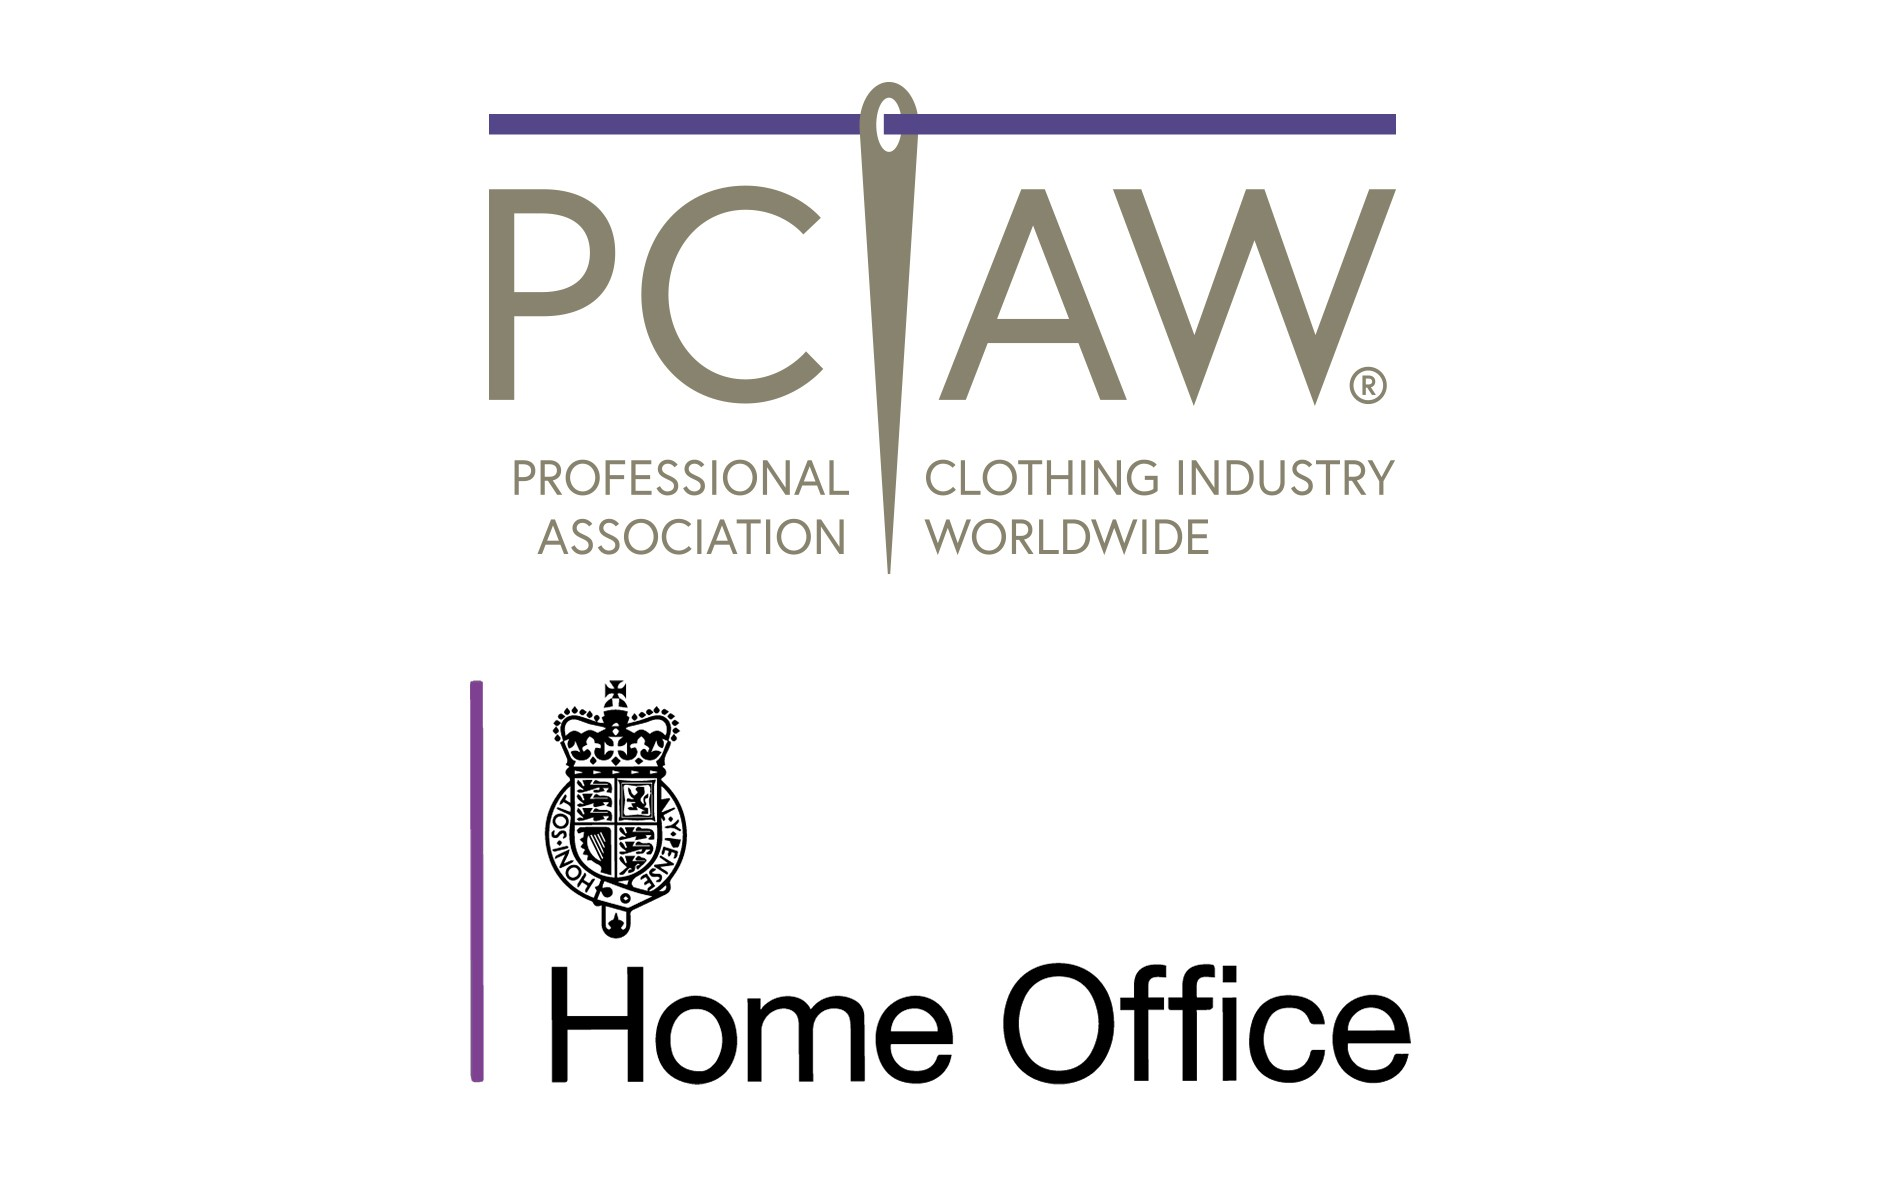 The temporary adjustments to the right to work checks introduced on 30 March 2020, due to COVID-19, are ending. Home Office